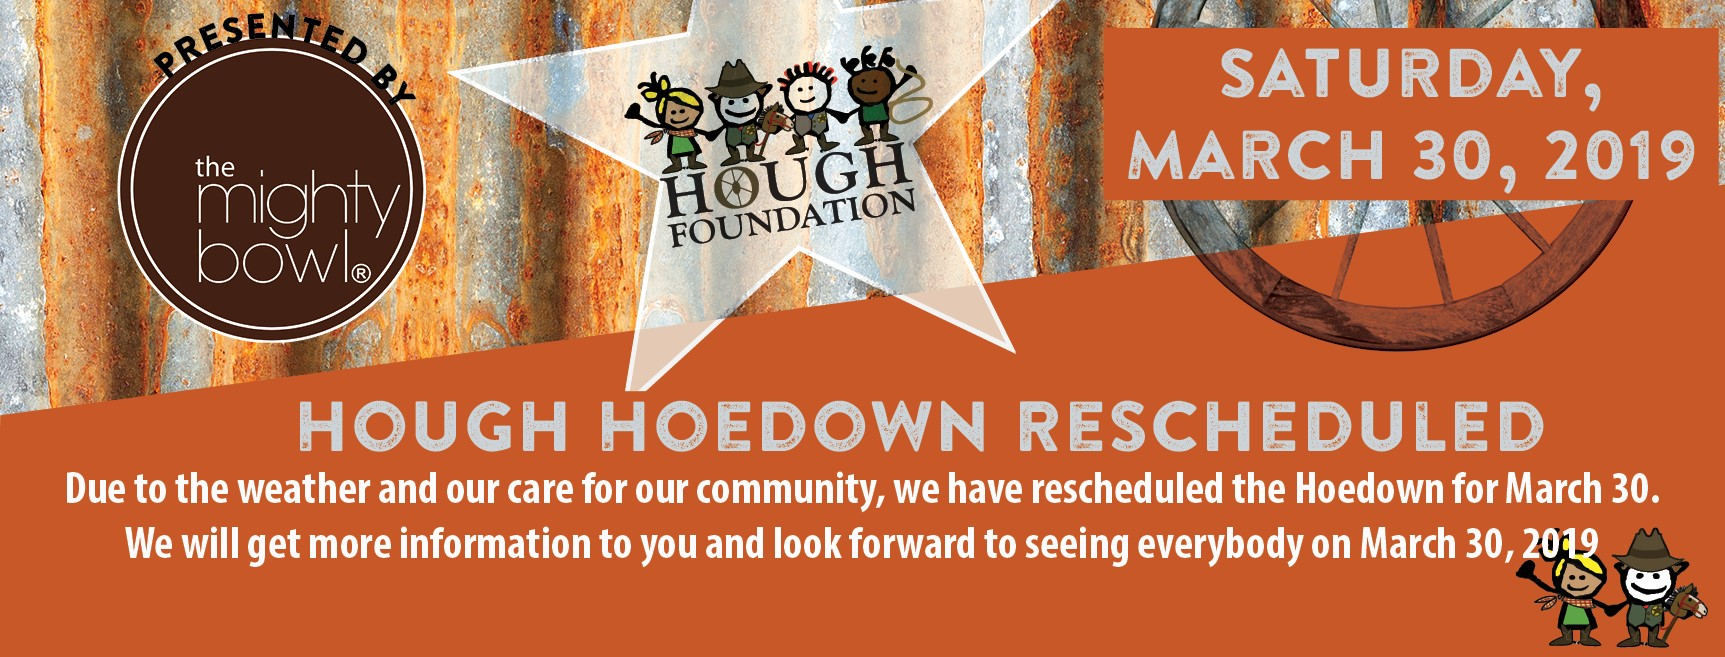 Hough Foundation HoeDown 2019